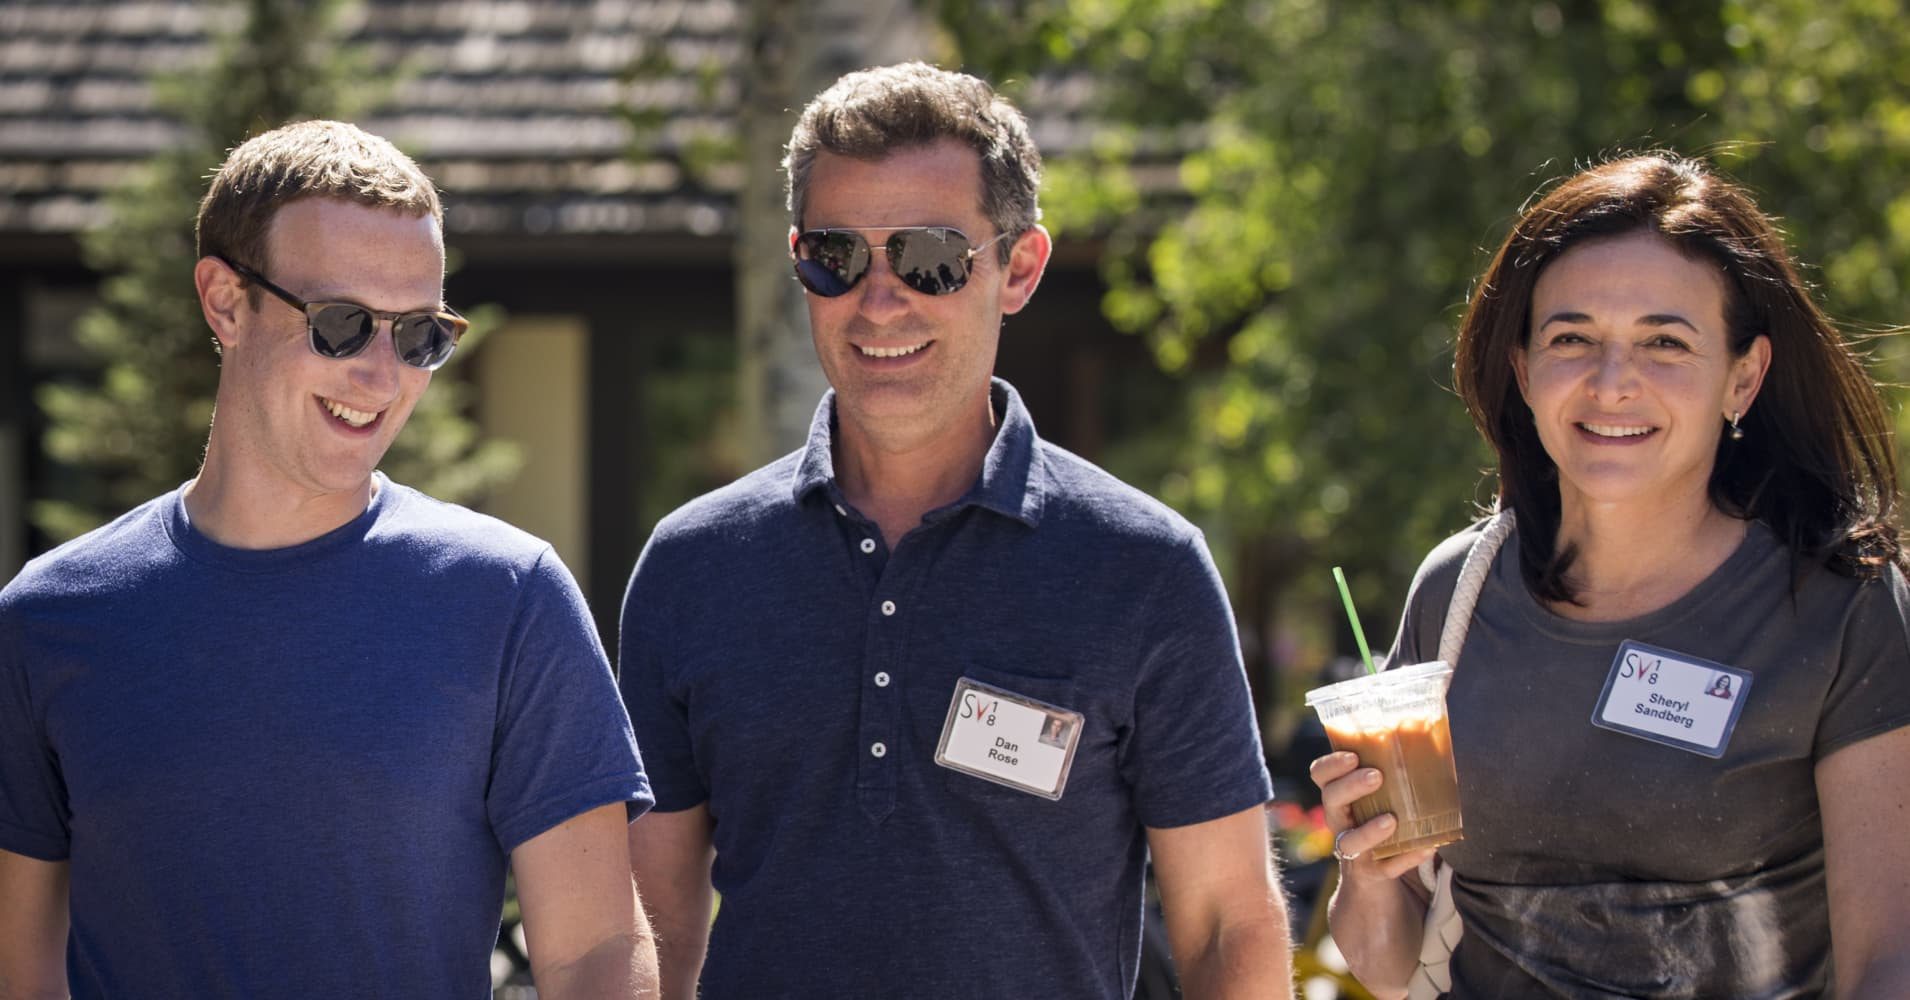 Facebook's 'family' is getting smaller, as several executives head for the exits in a turbulent year